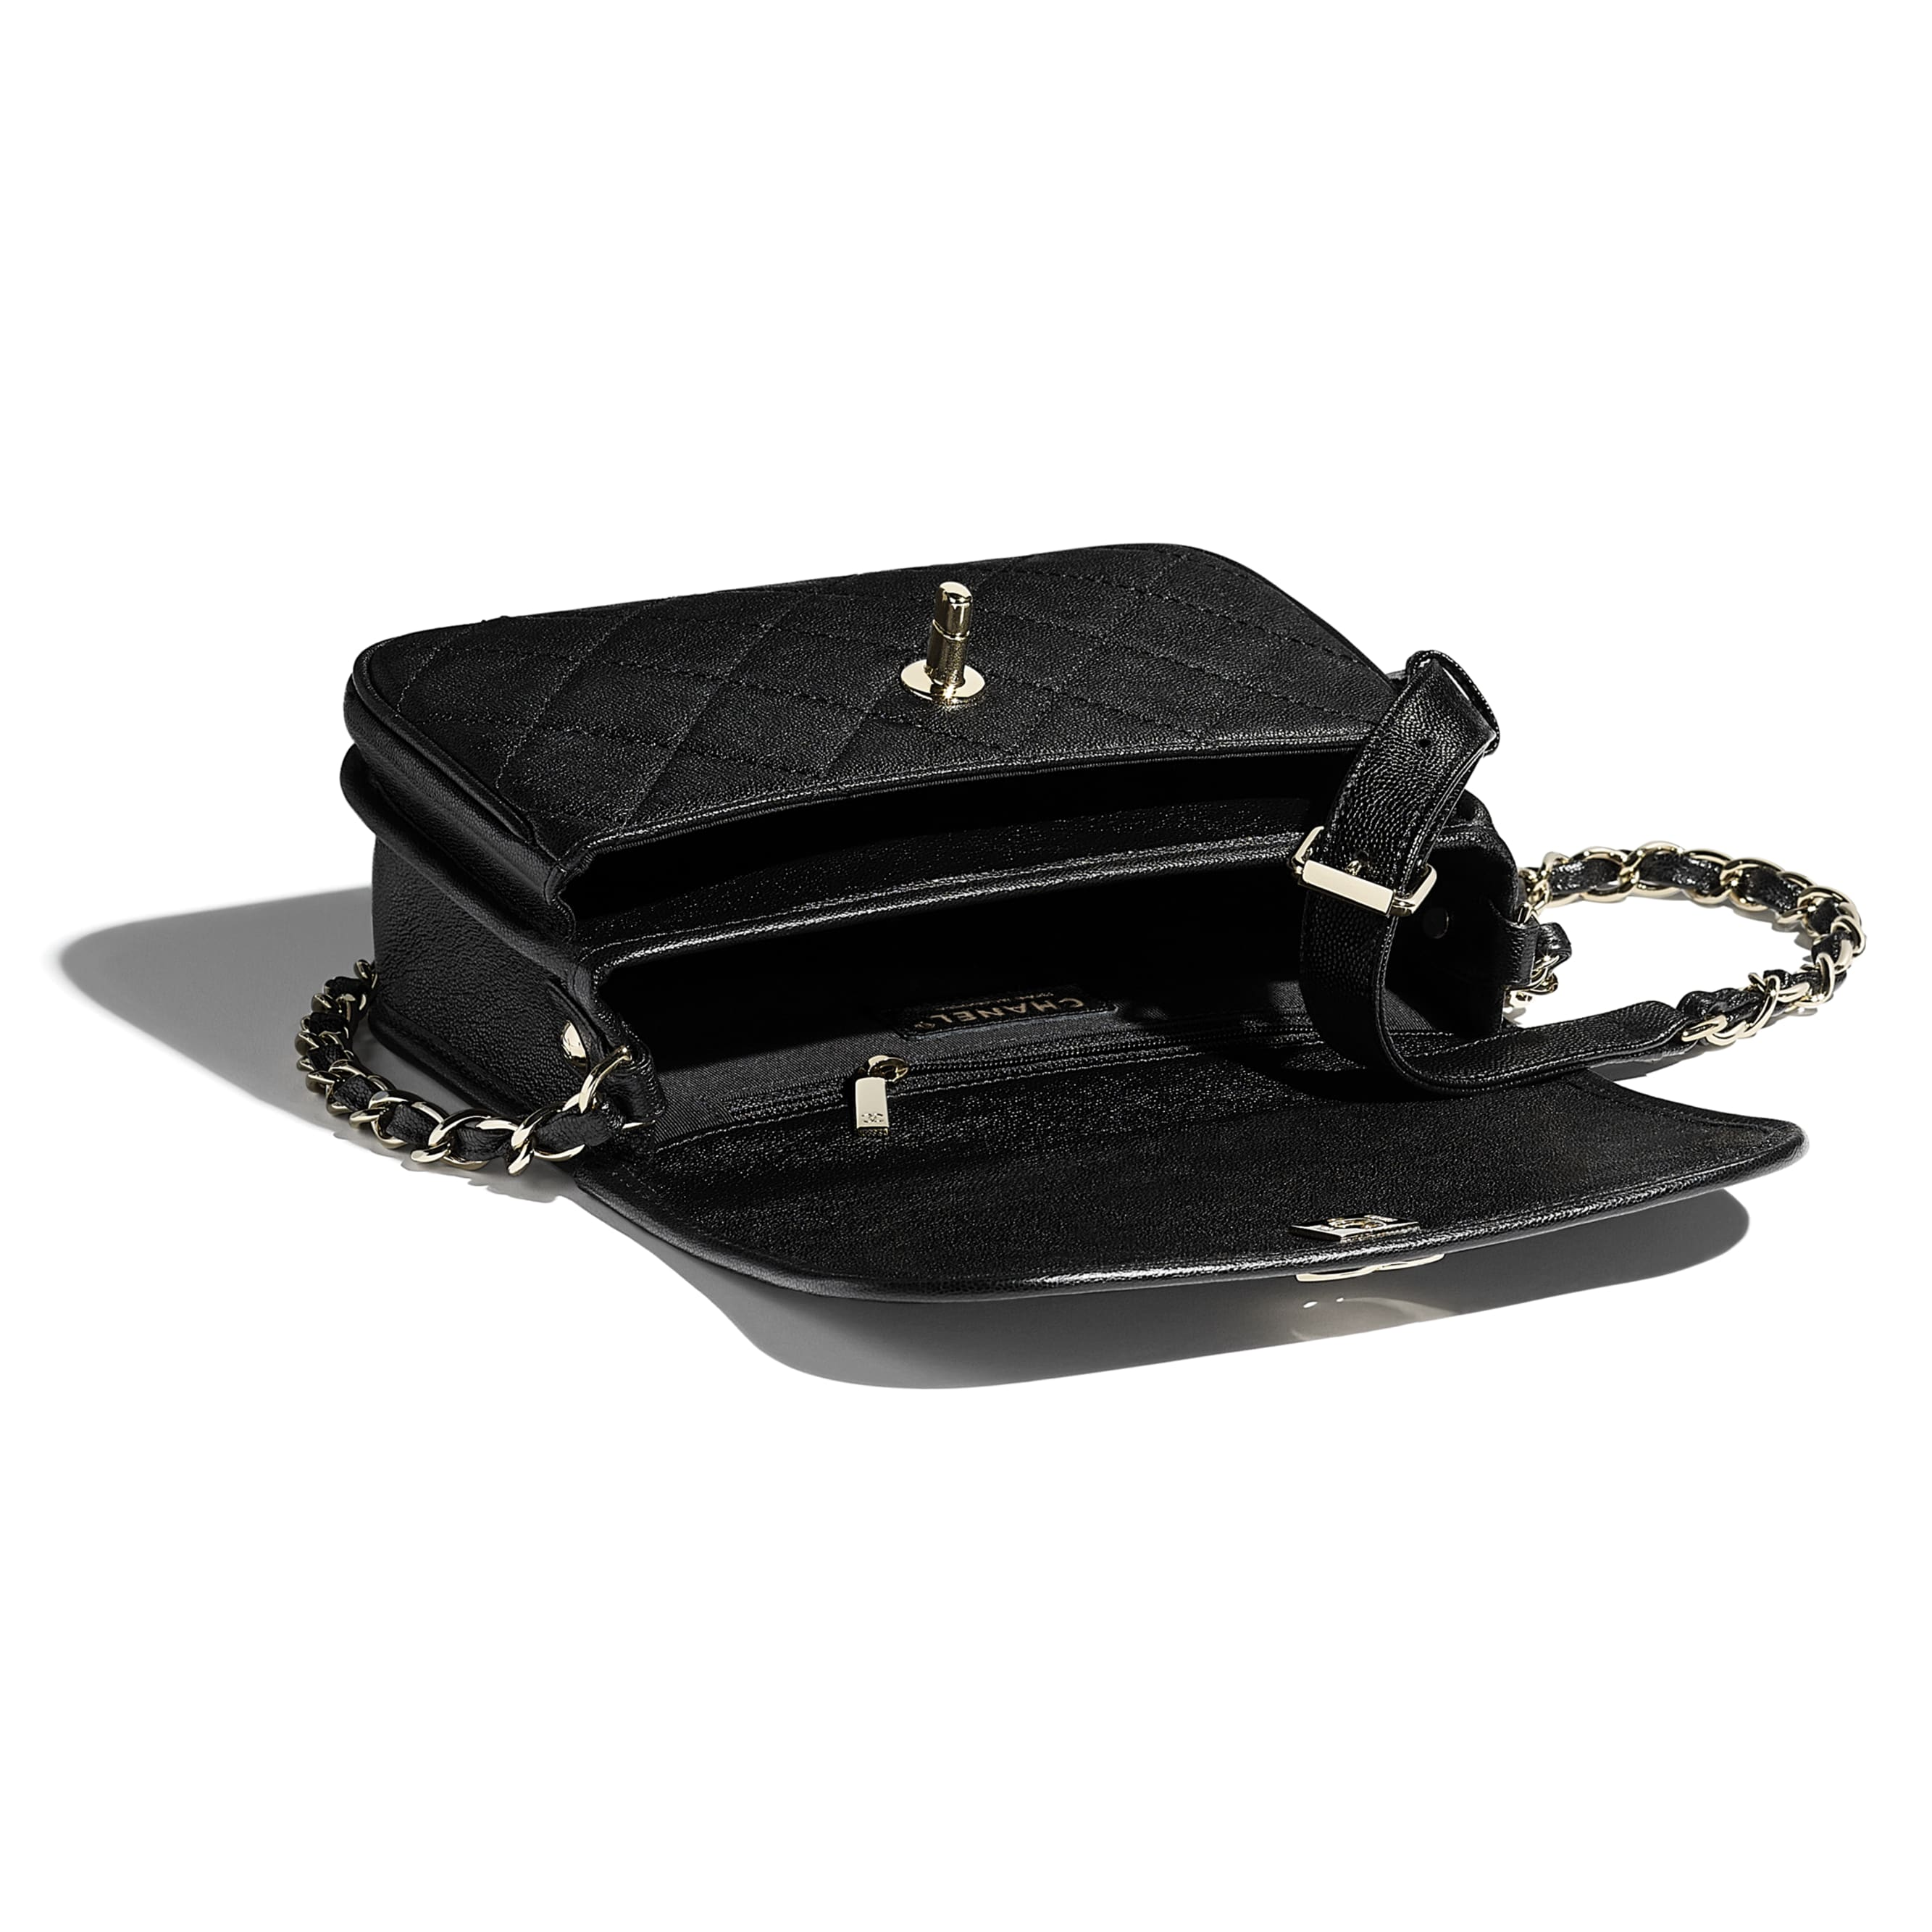 Small Messenger Bag - Black - Grained Calfskin & Gold-Tone Metal - CHANEL - Other view - see standard sized version